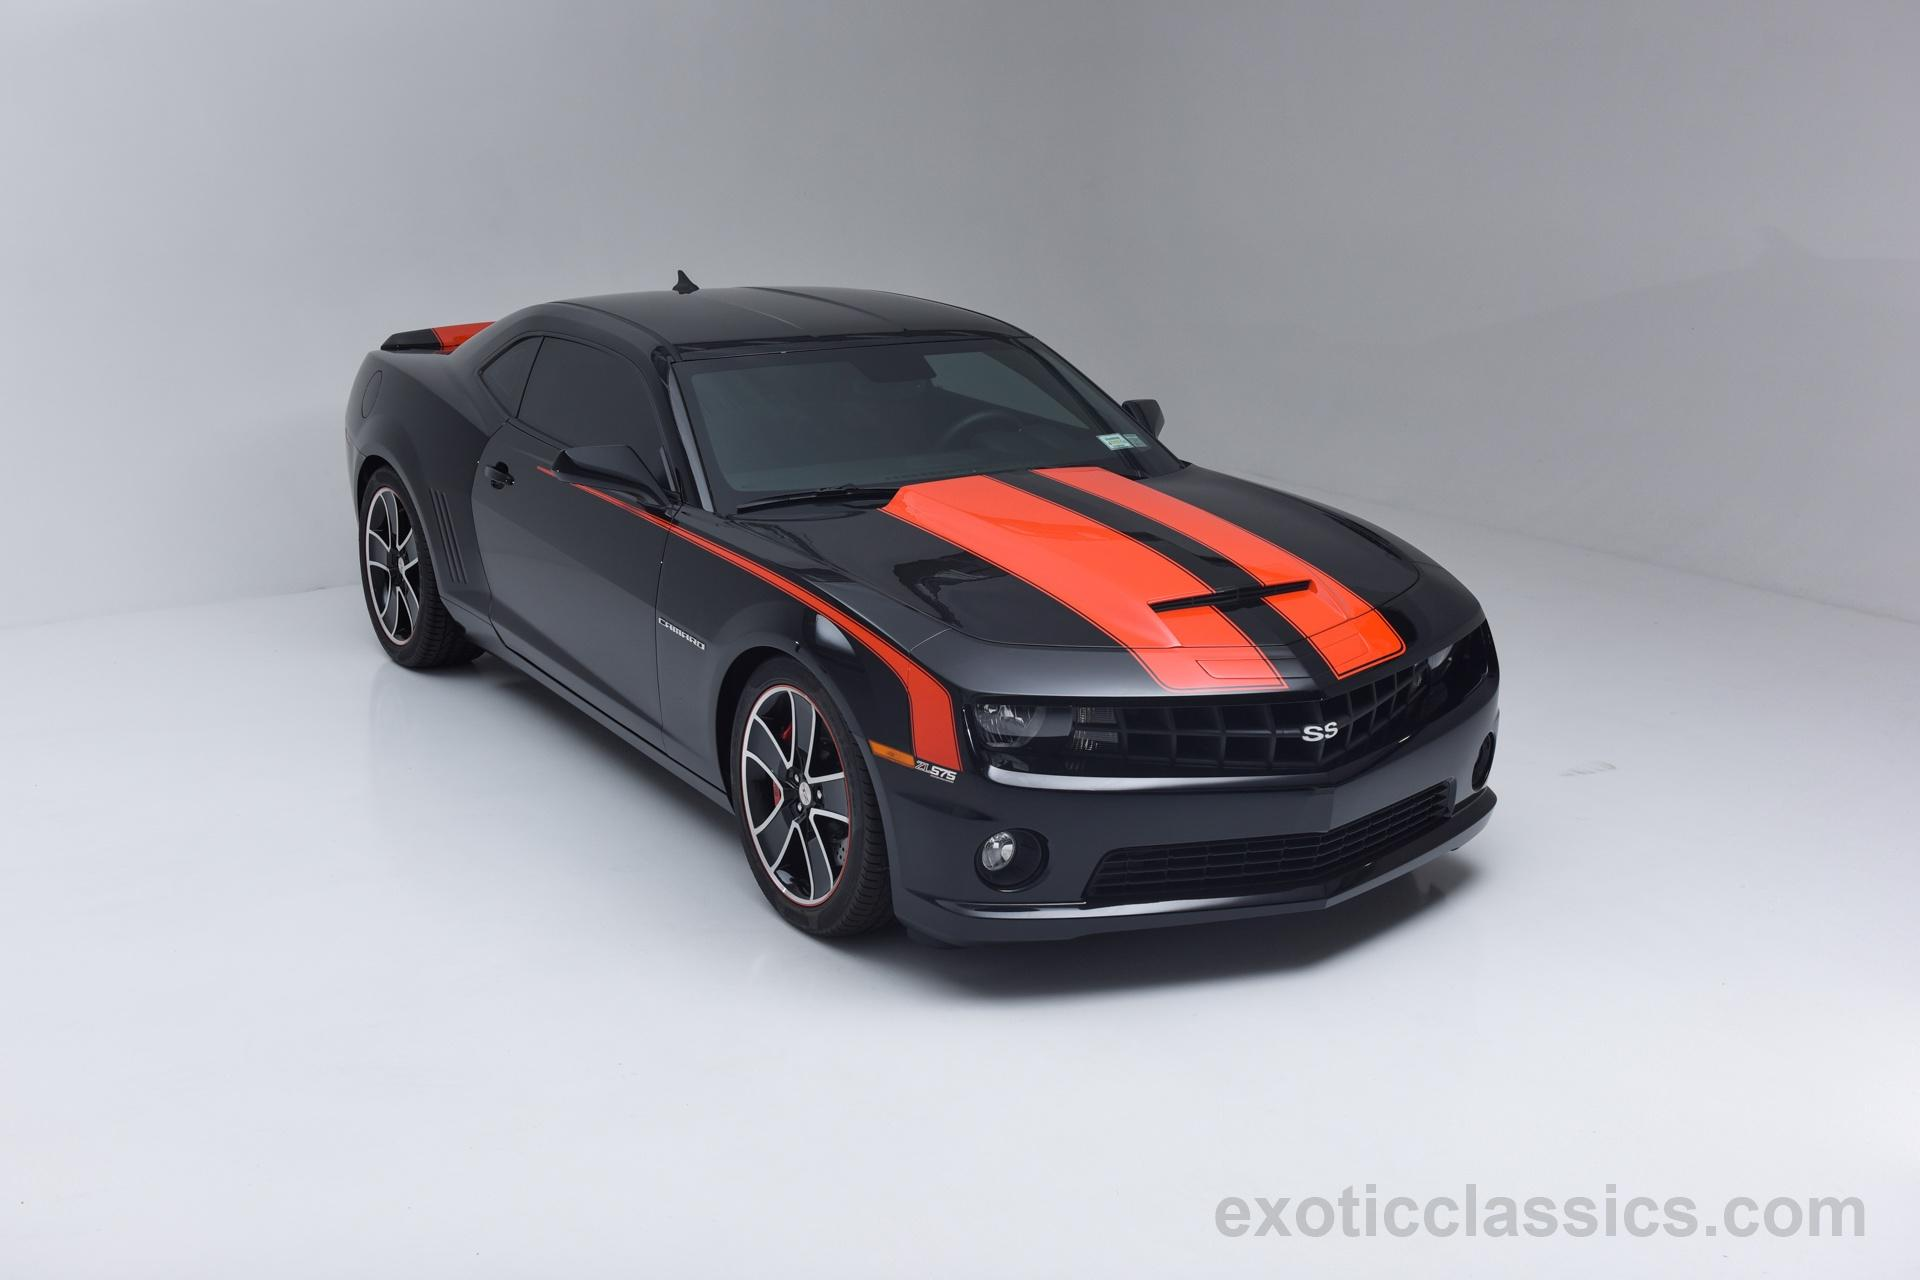 2010 Chevrolet Camaro Zl575 Slp Ss Exotic And Classic